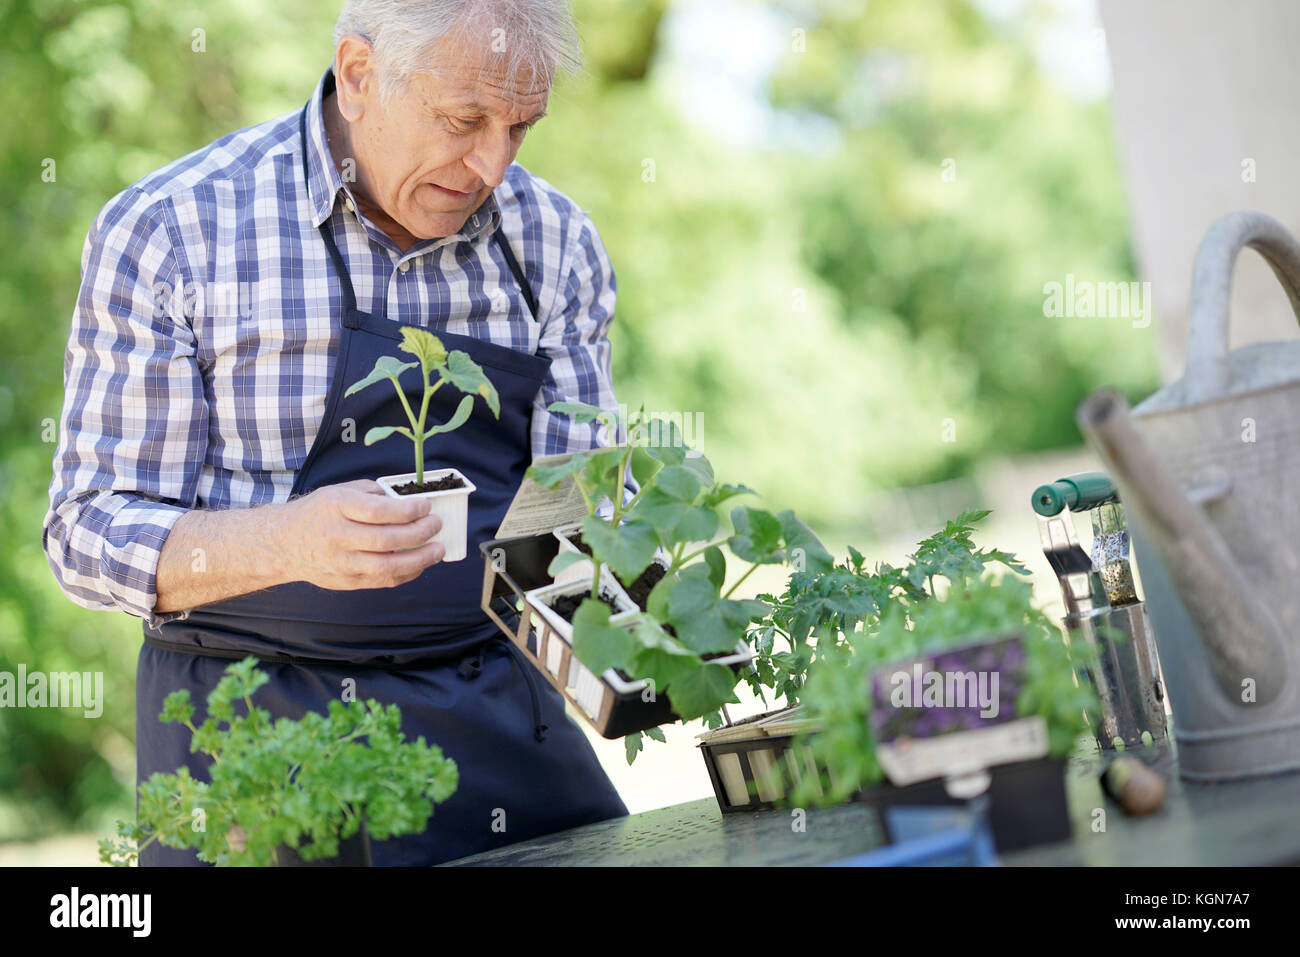 Senior man in garden looking at young plants - Stock Image